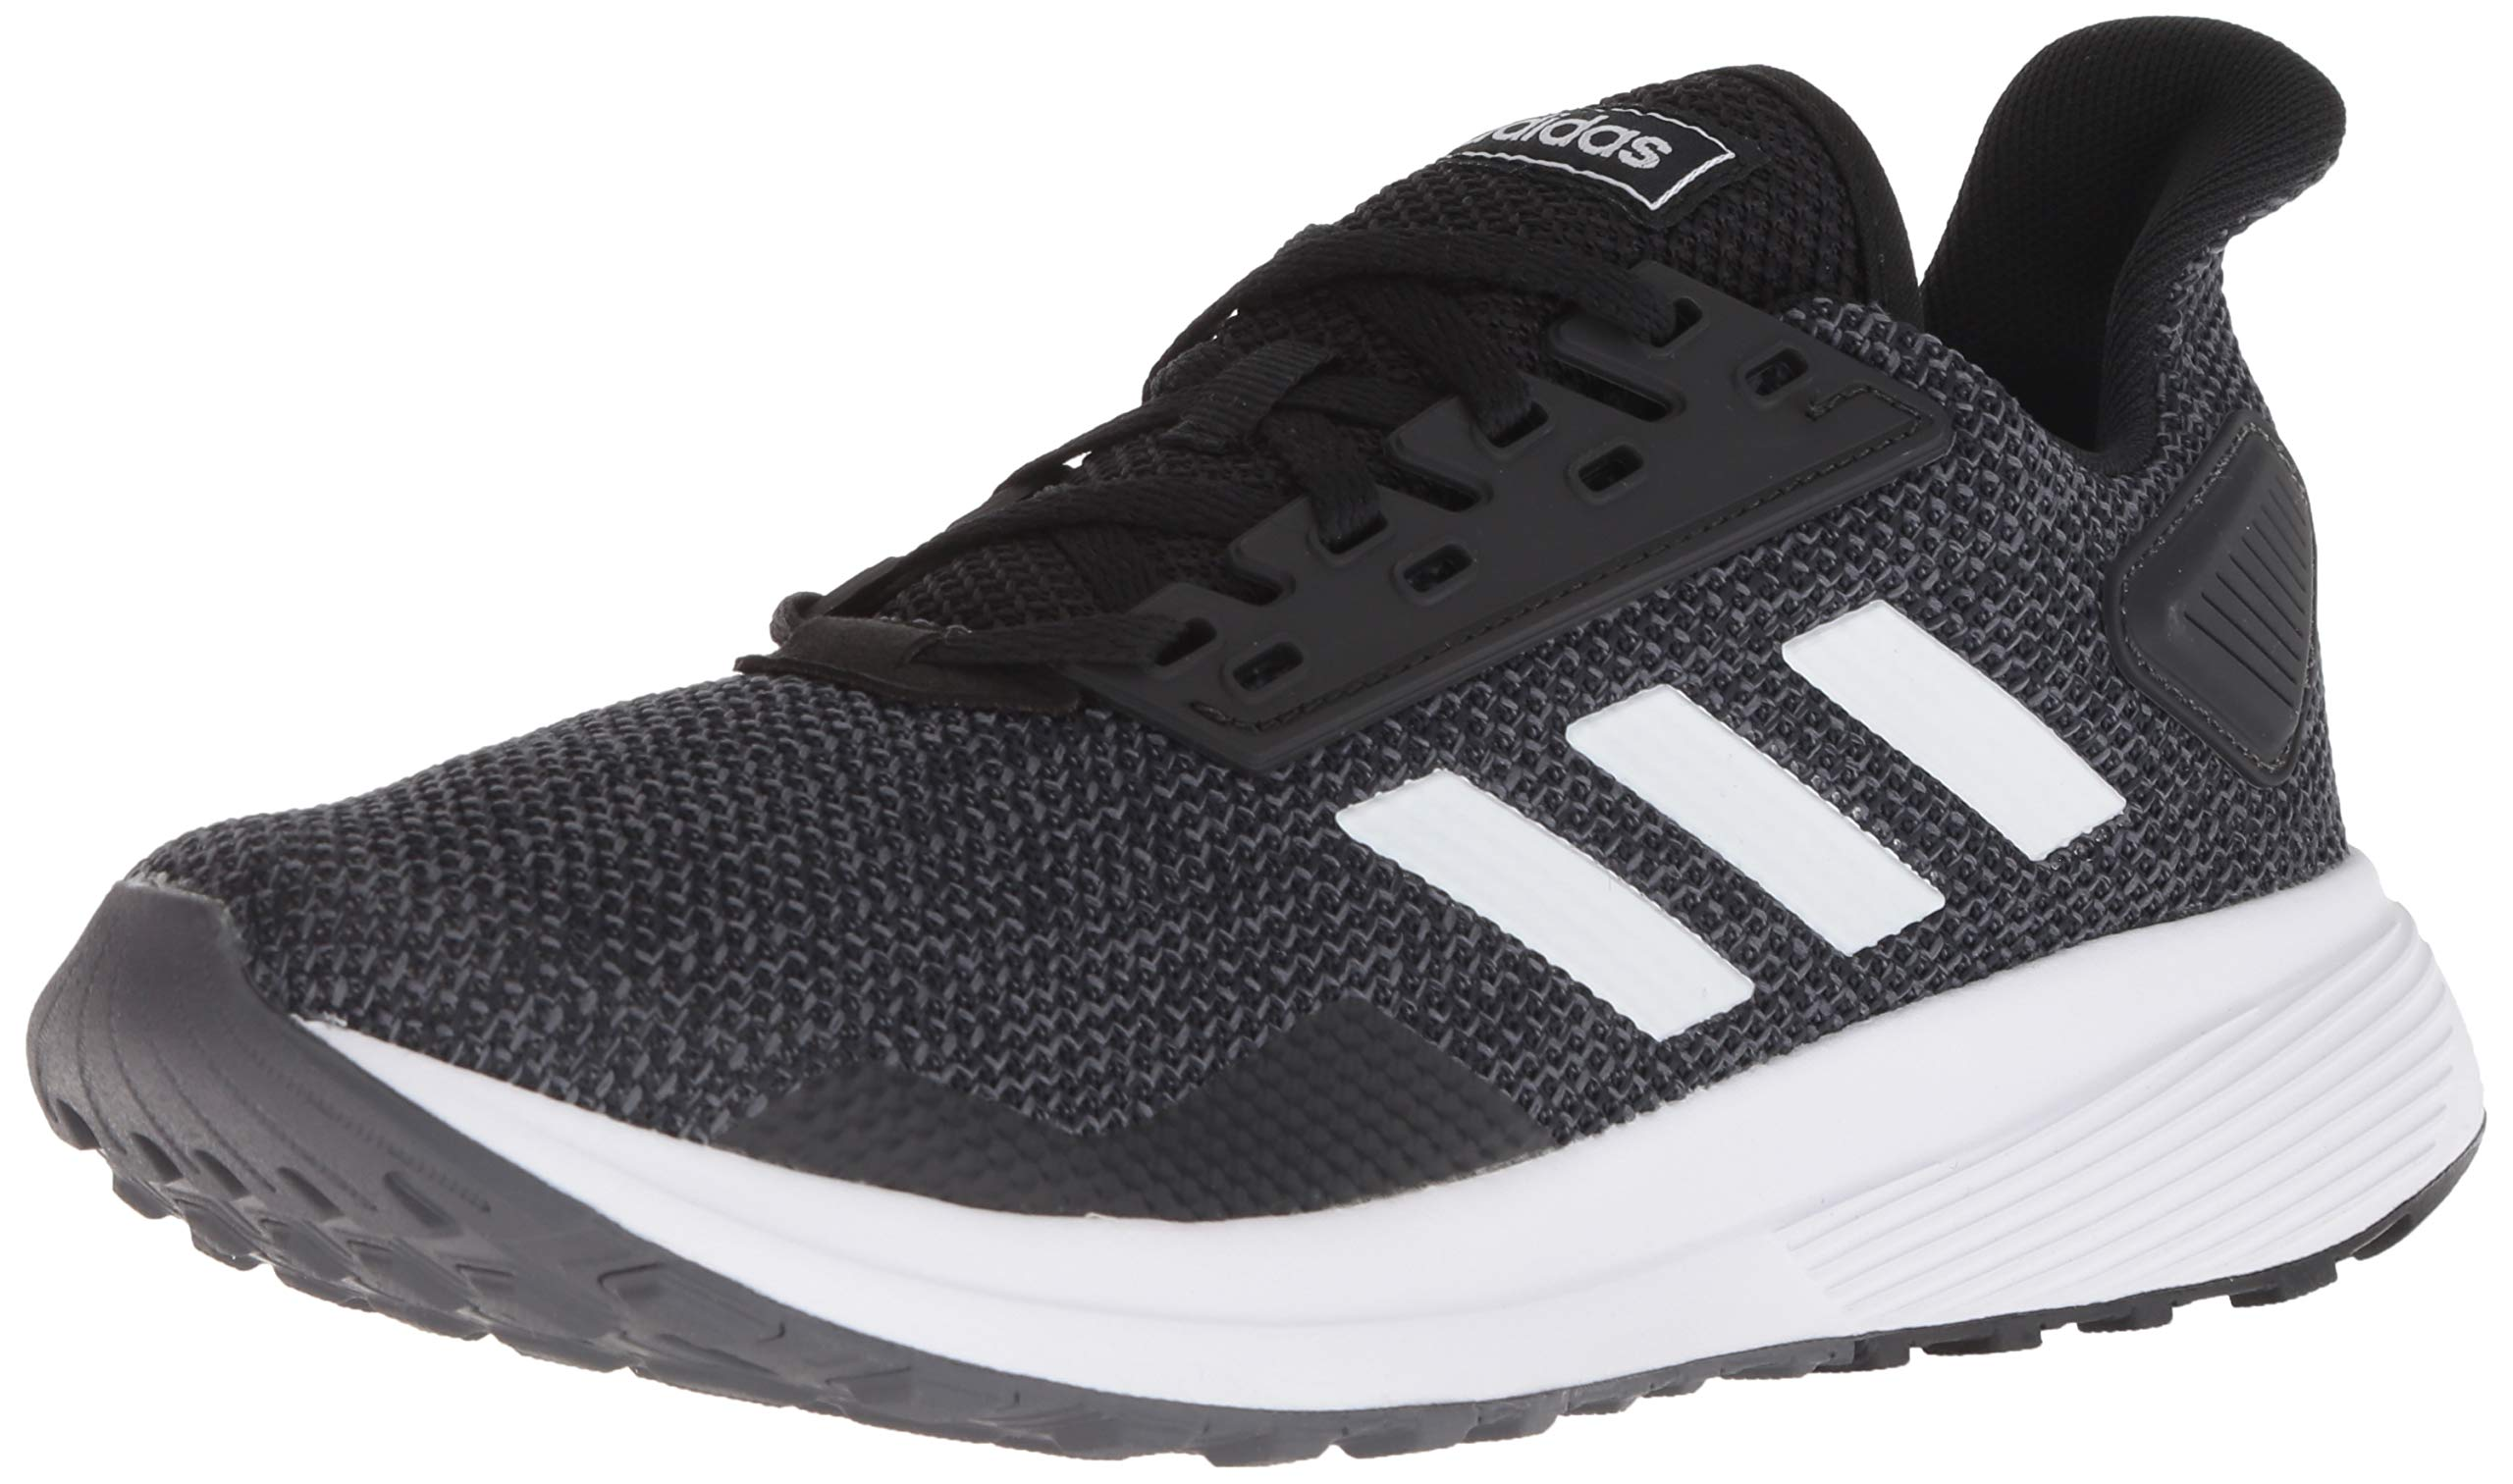 adidas Women's Duramo 9 Running Shoe, Black/White/Grey, 7 M US by adidas